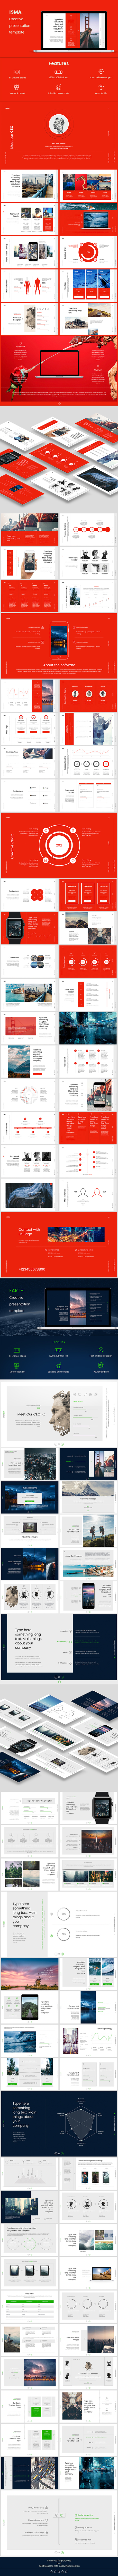 Bundle 2 in 1 - Keynote Templates Presentation Templates